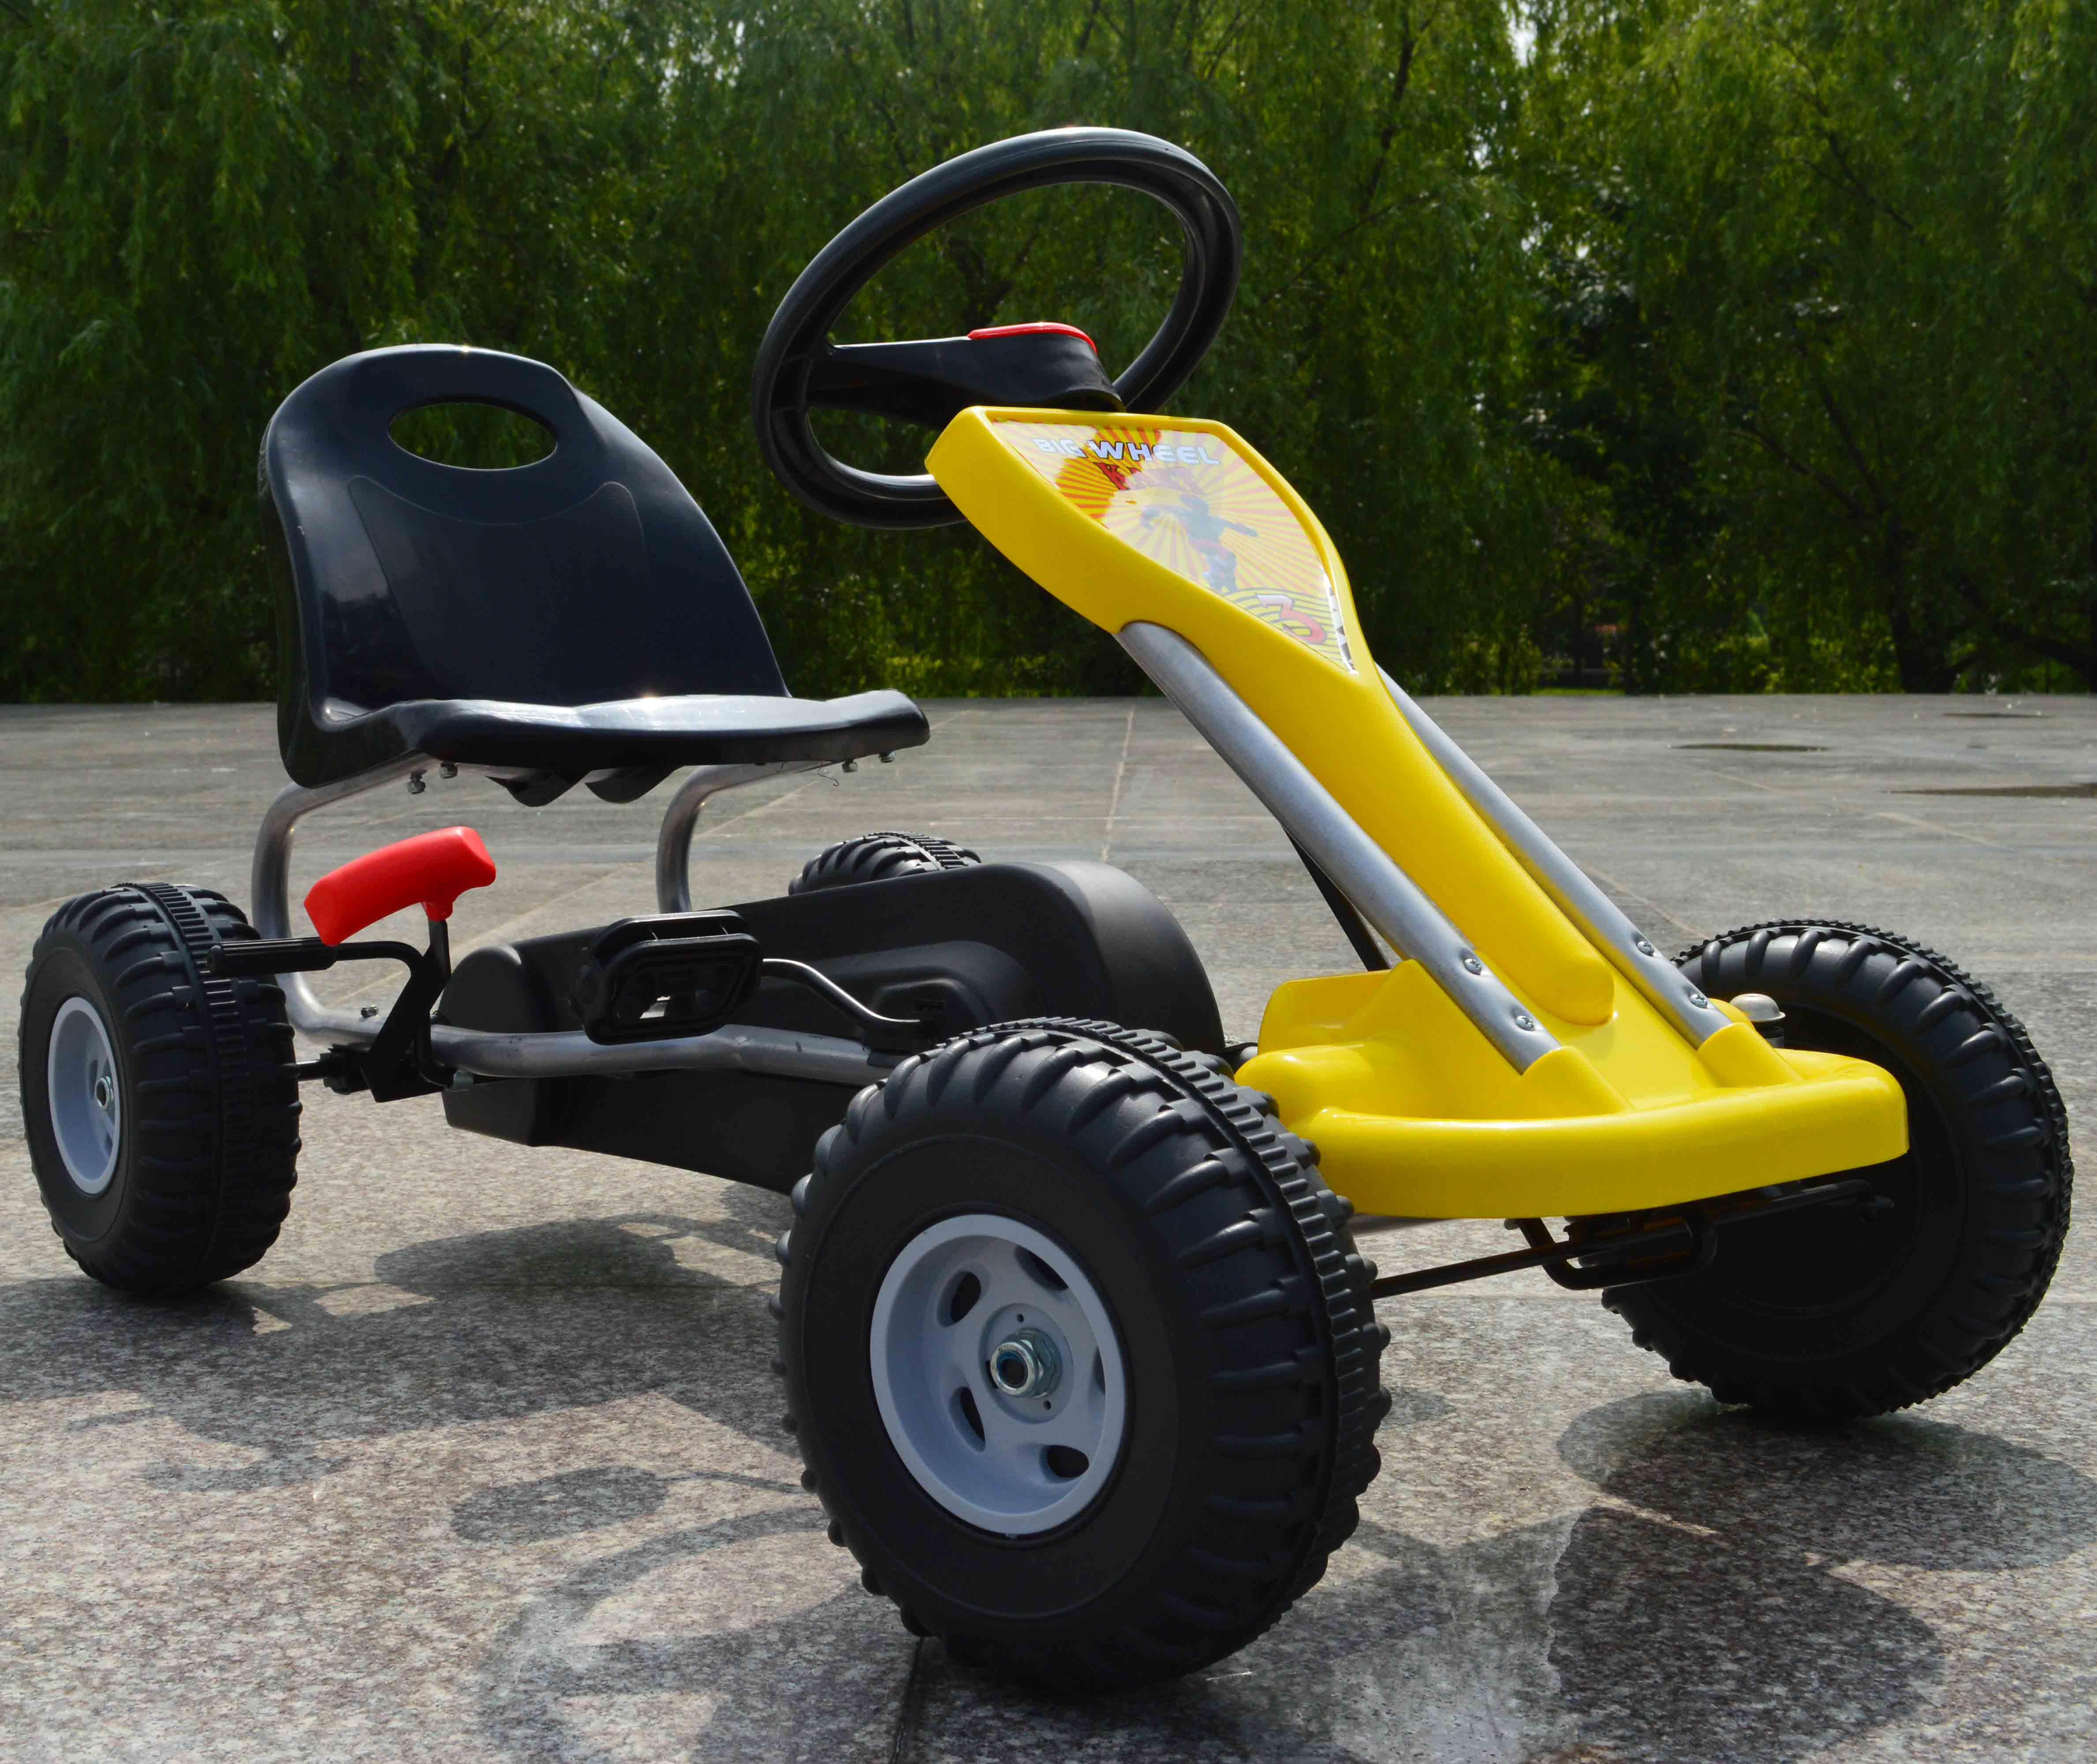 Racer Pedal Car/Go Kart With Hand Brake Youth Ages 3+ Racer Pedal Car/Go Kart With Hand Brake Youth Ages 3+